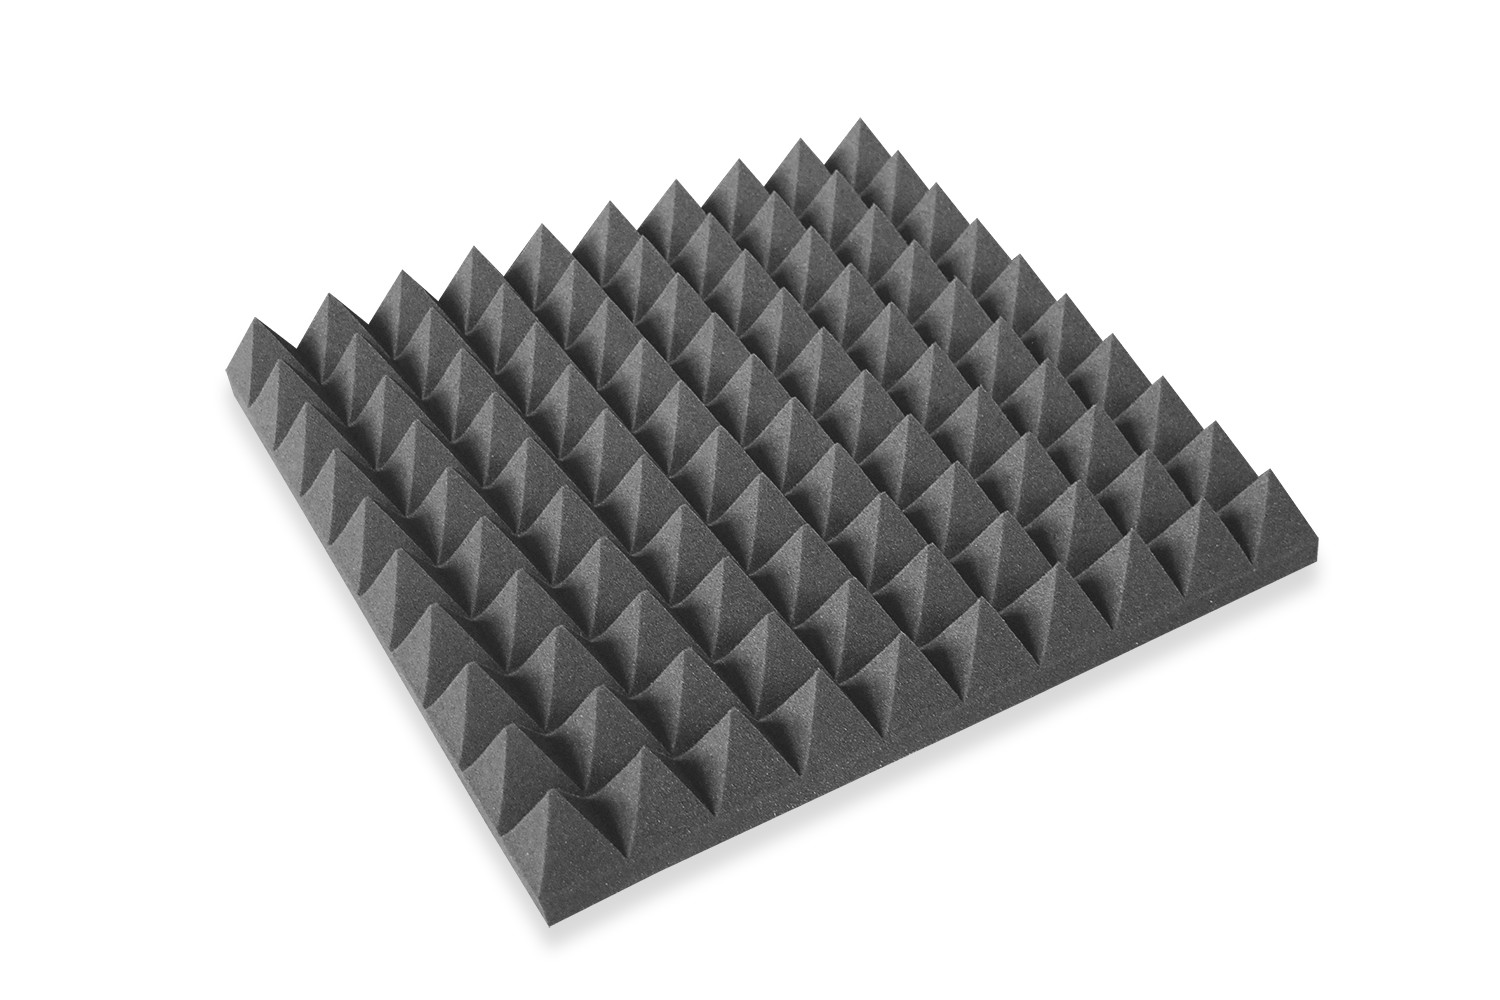 Item FOAM, ACOUSTIC SPONGE, Pyramid 50x50x5